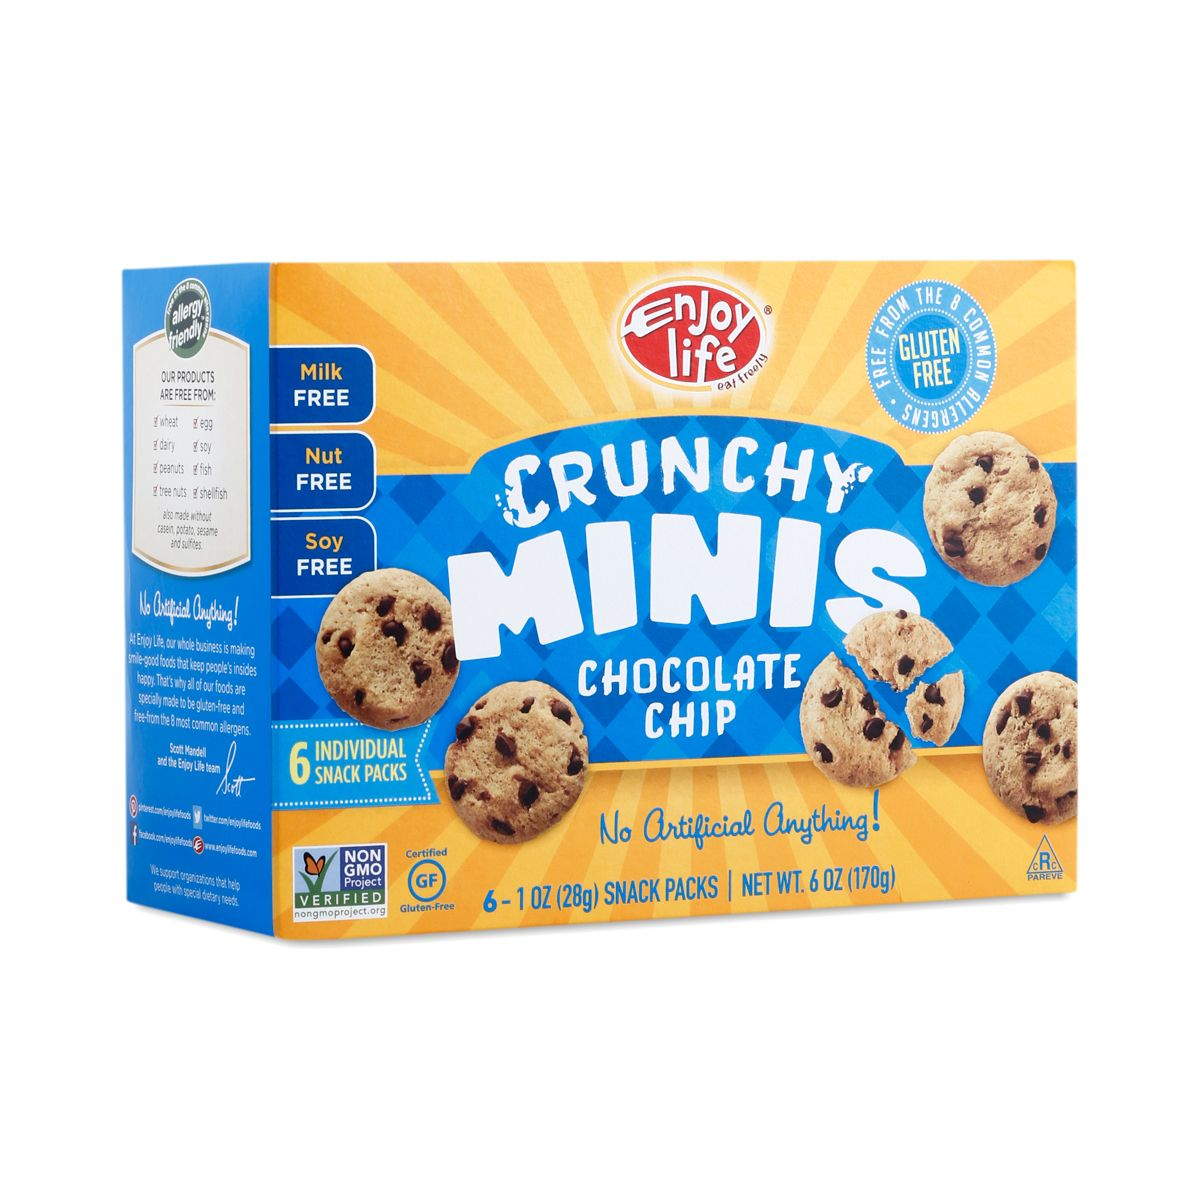 Enjoy Life Crunchy Minis Chocolate Chip Cookies are gluten-free, dairy-free, satisfyingly crunchy, and studded with chocolate chips.